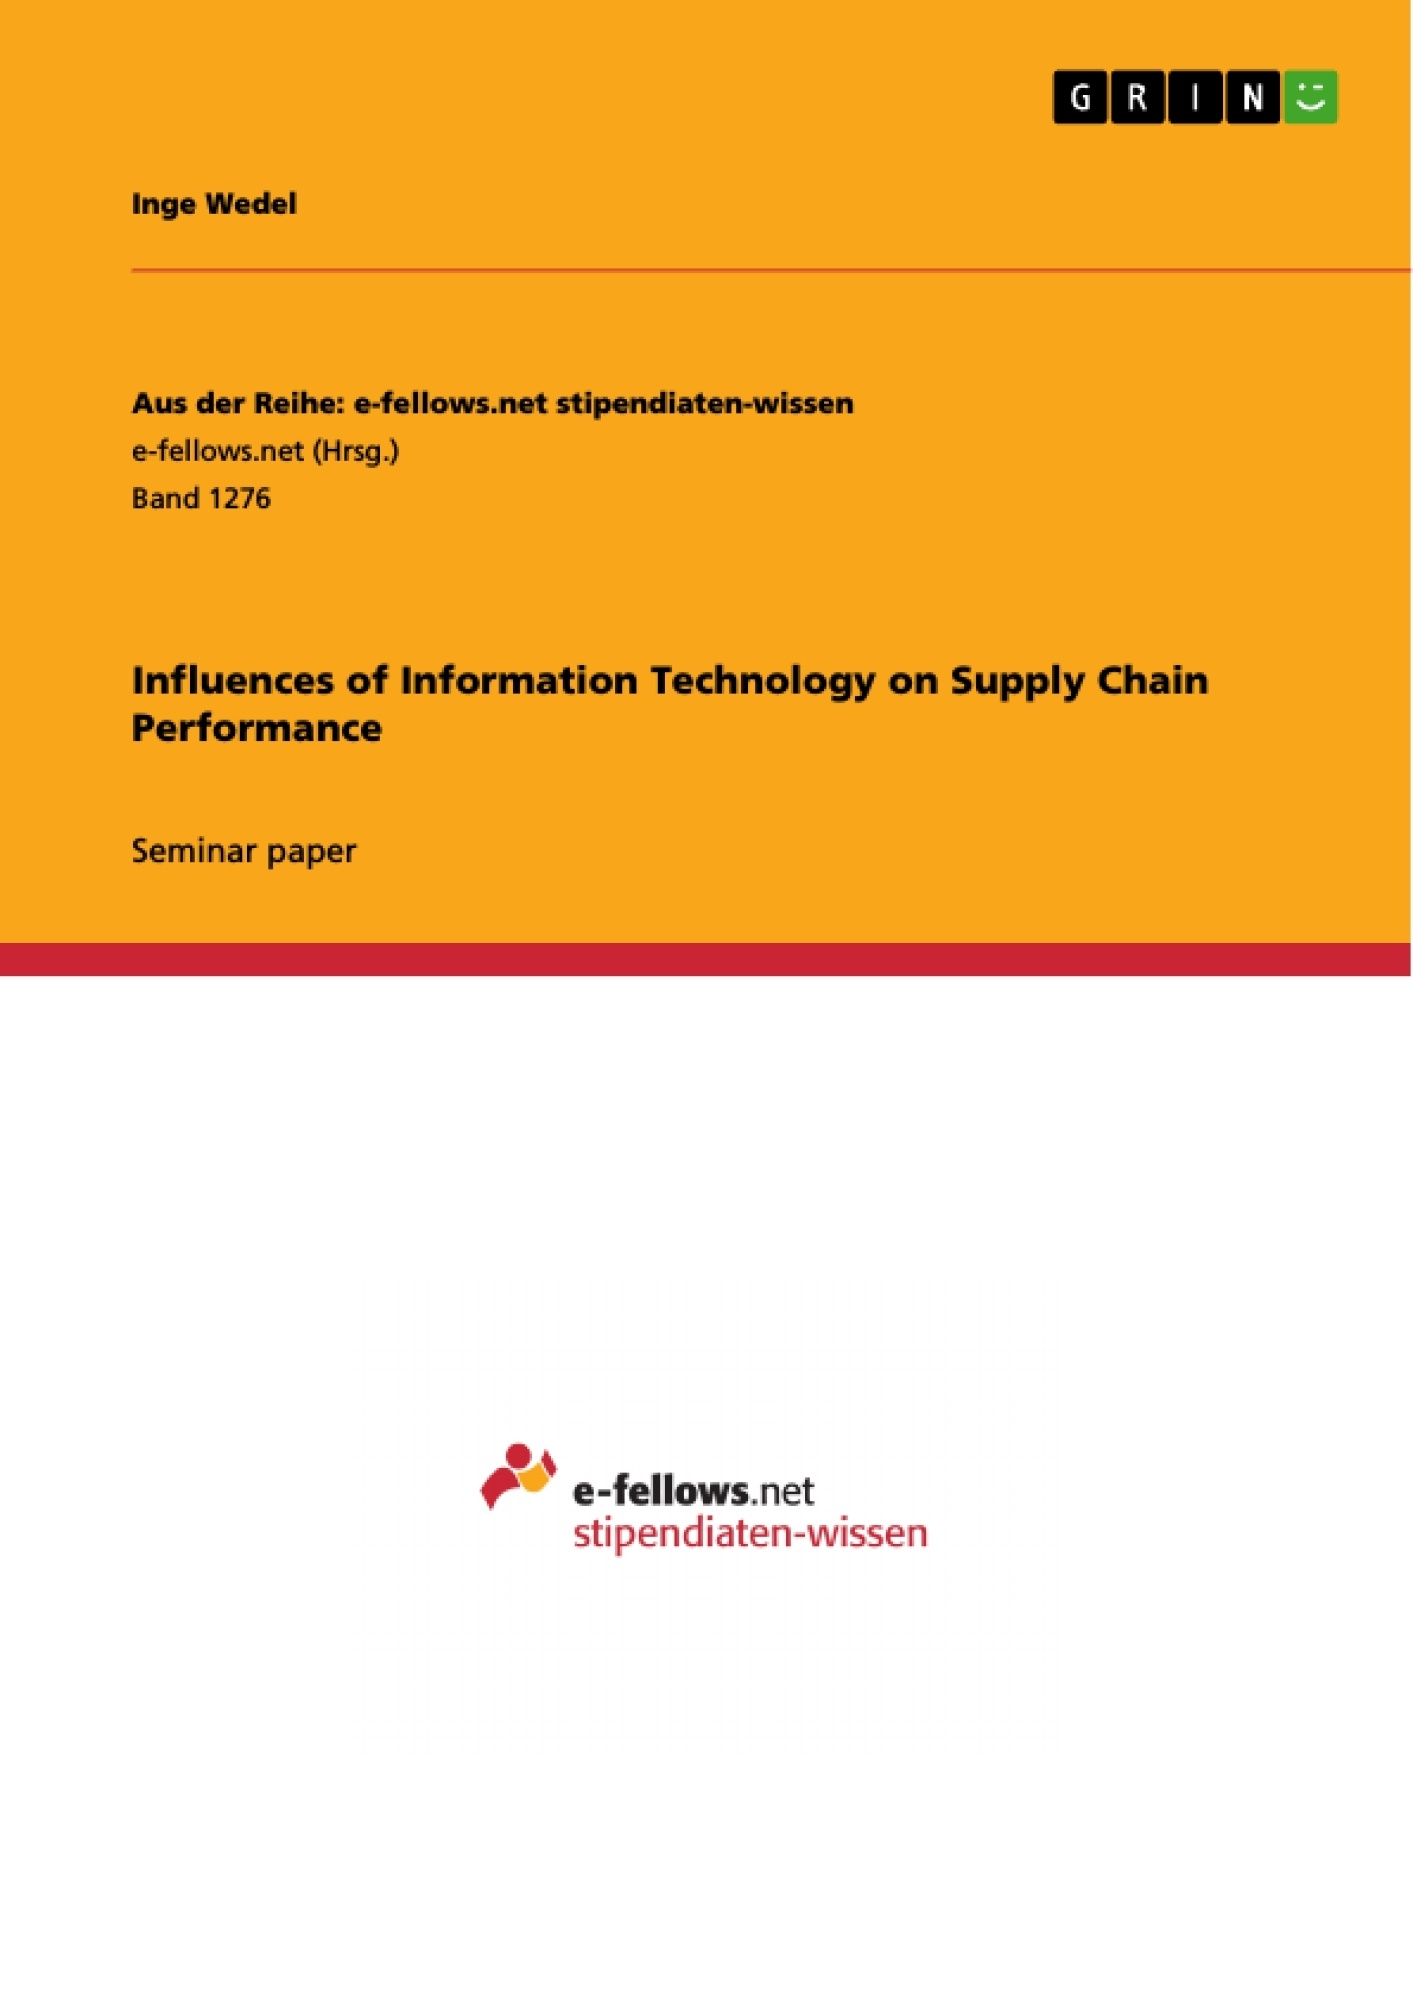 Title: Influences of Information Technology on Supply Chain Performance